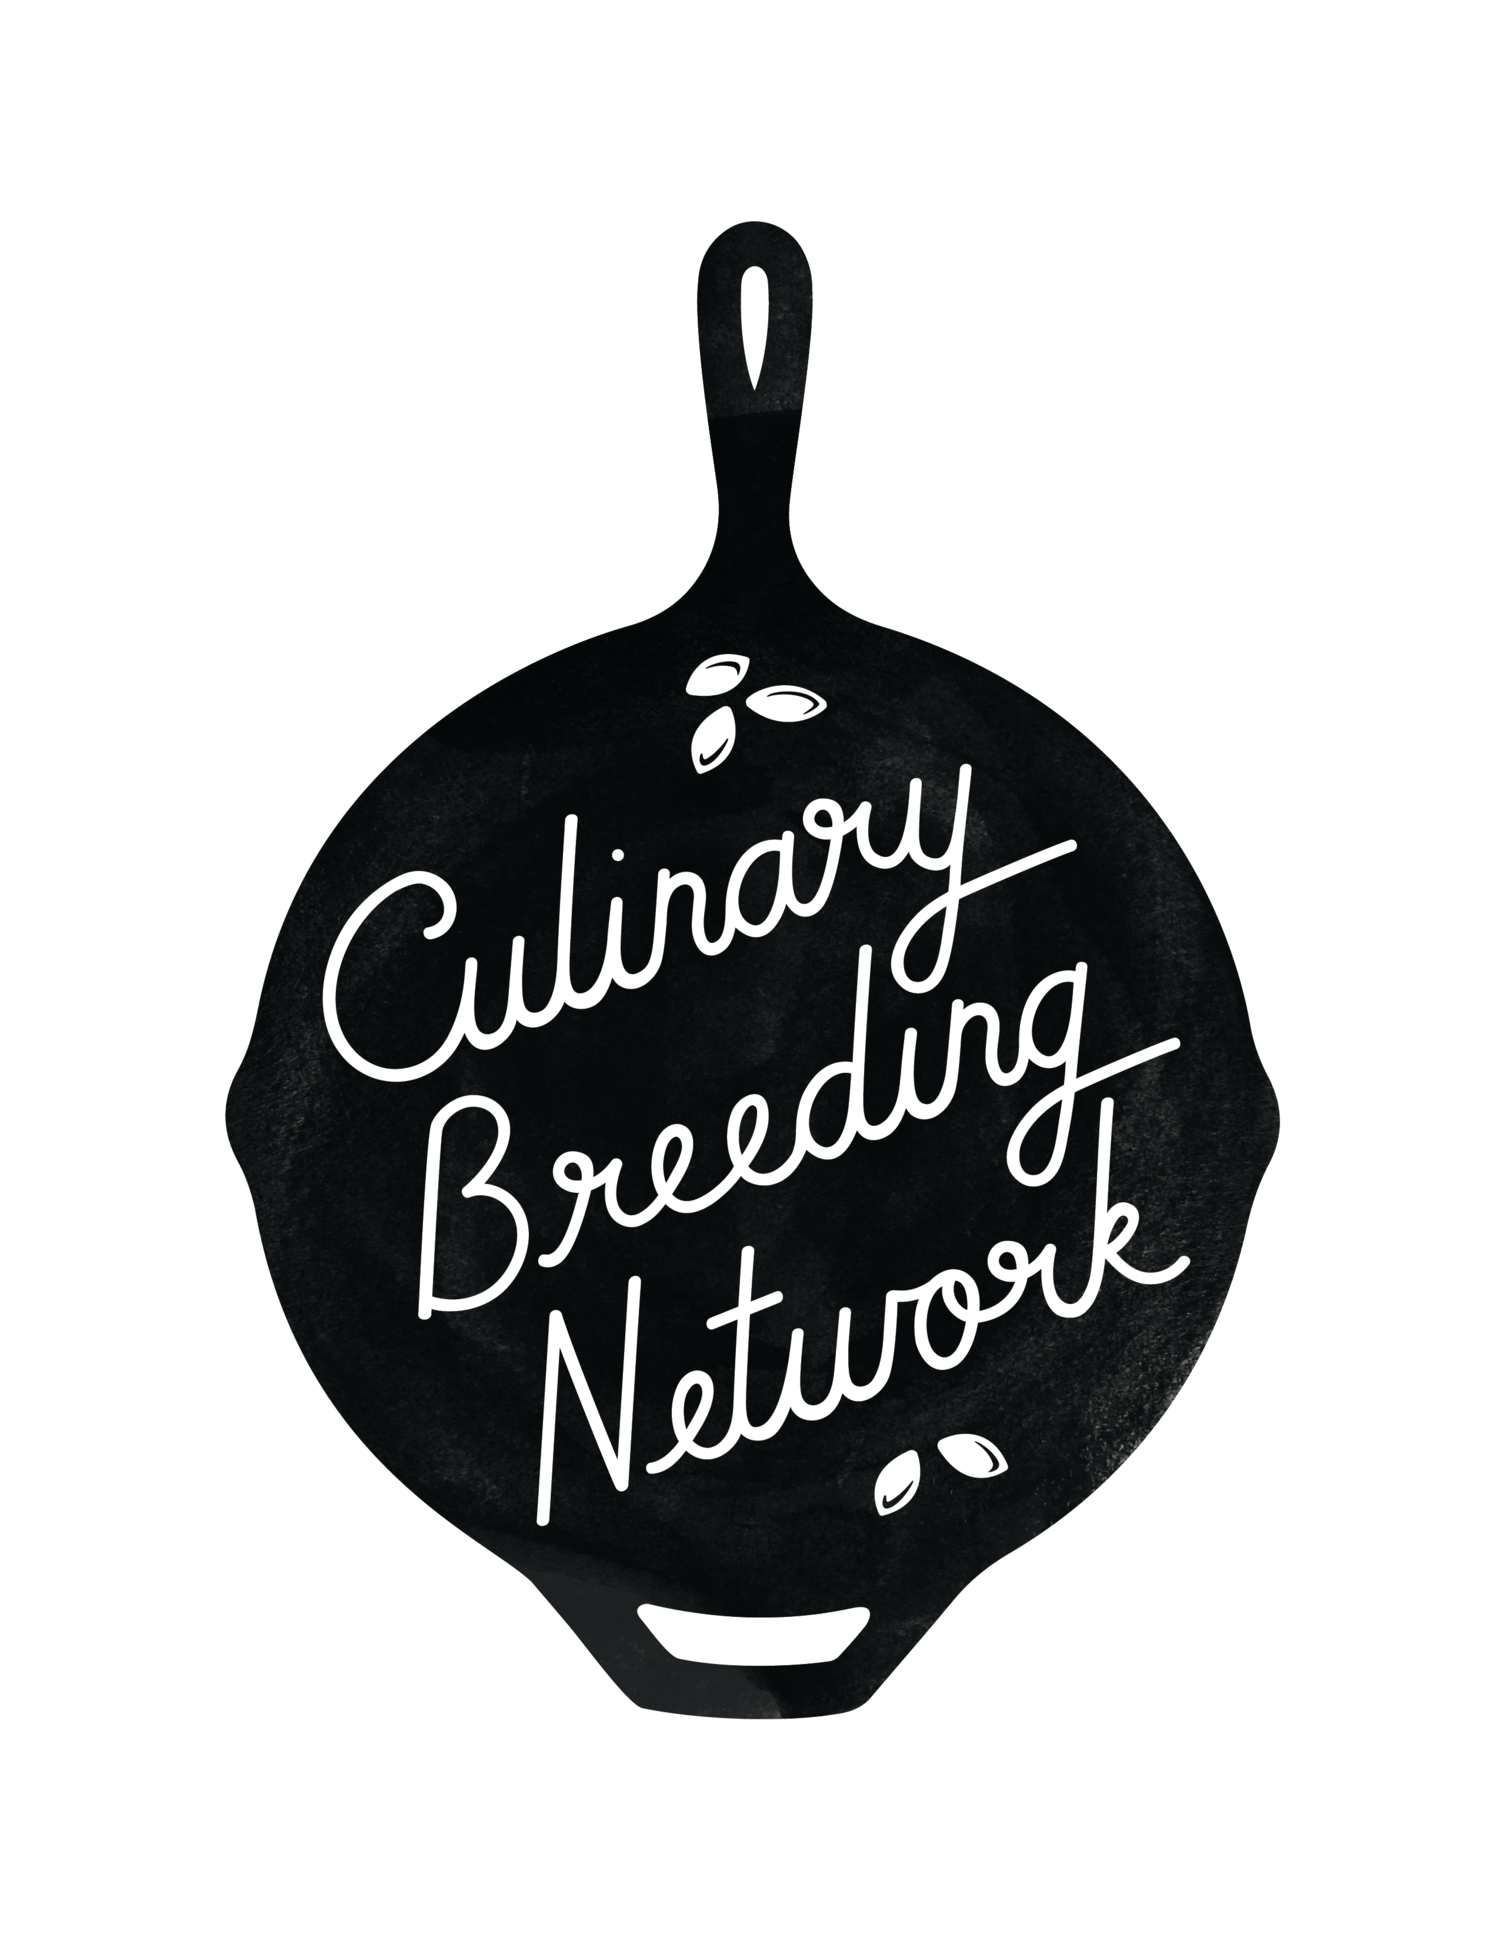 Culinary Breeding Network